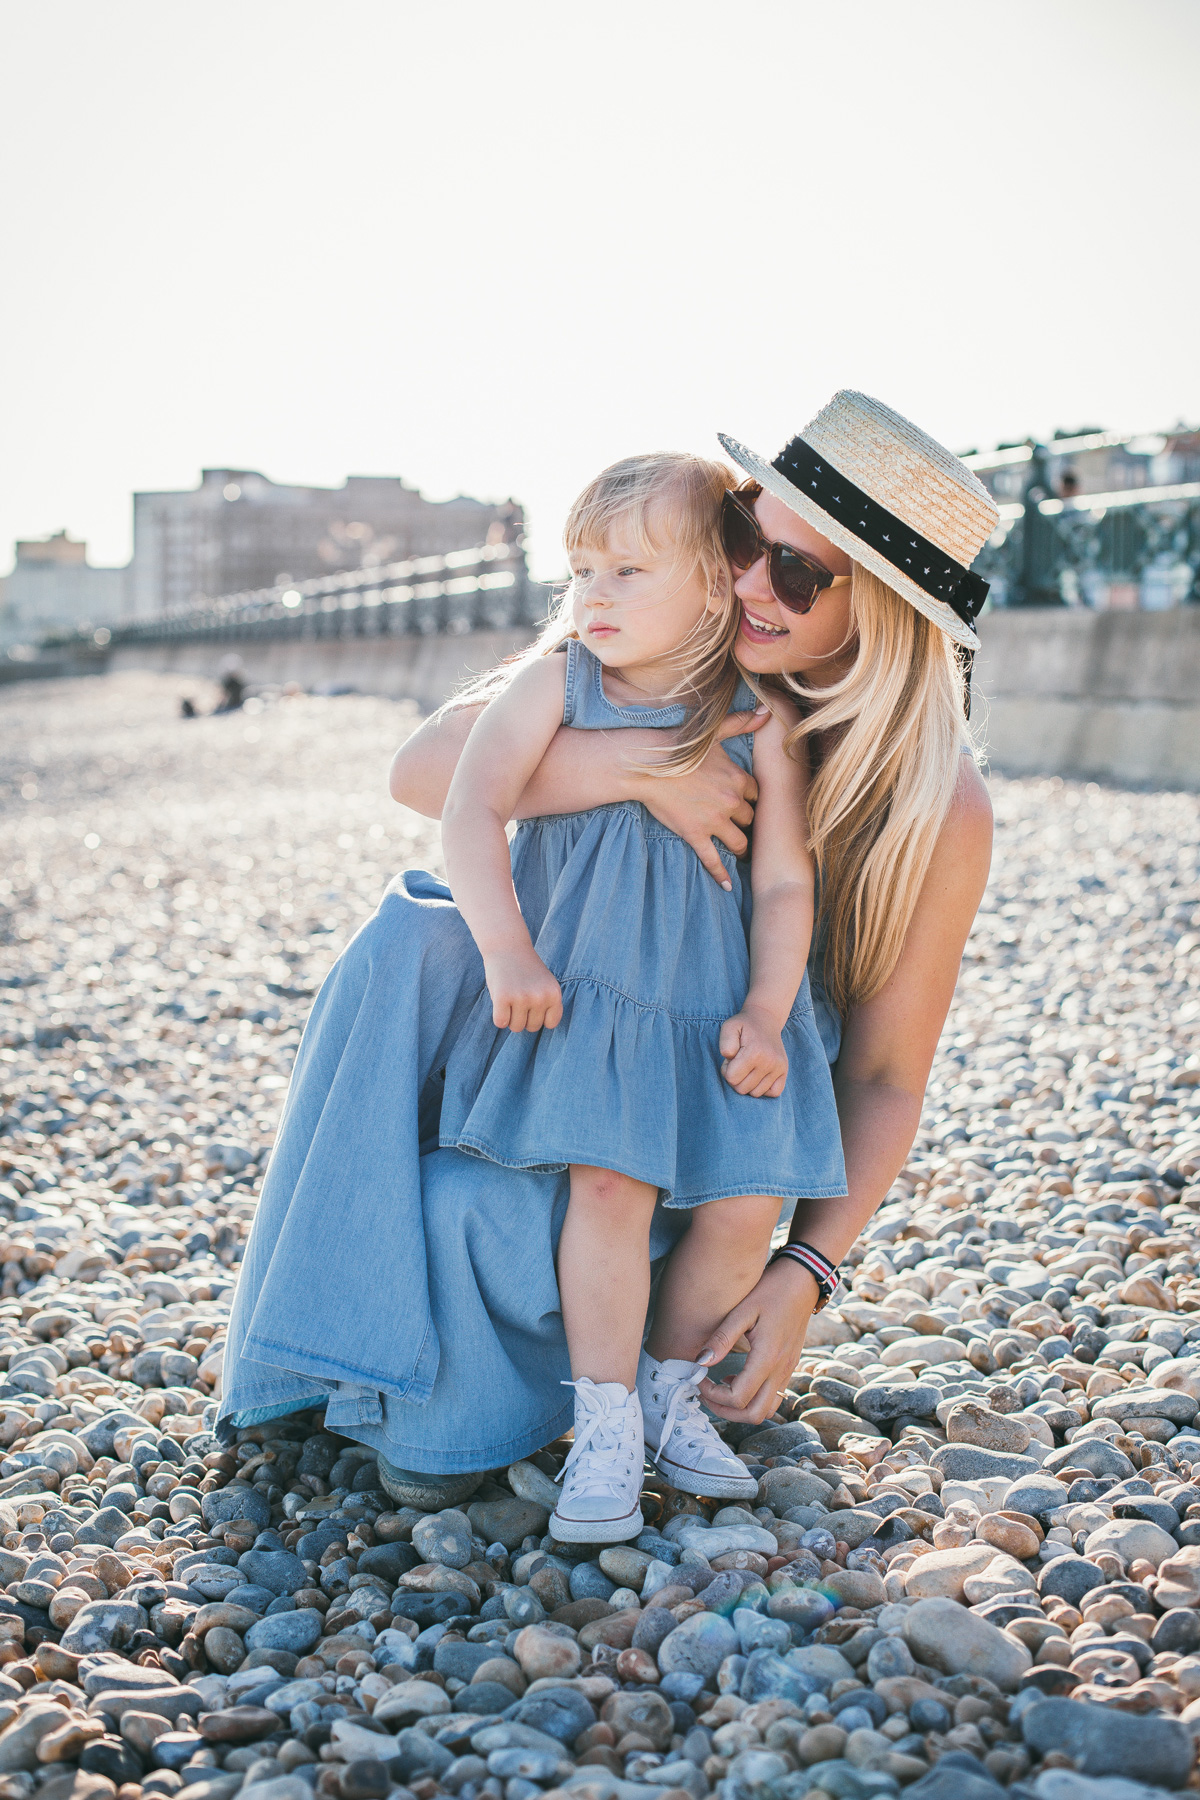 Laura-Family-Portrait-Brighton-VILCINSKAITE-PHOTO.jpg